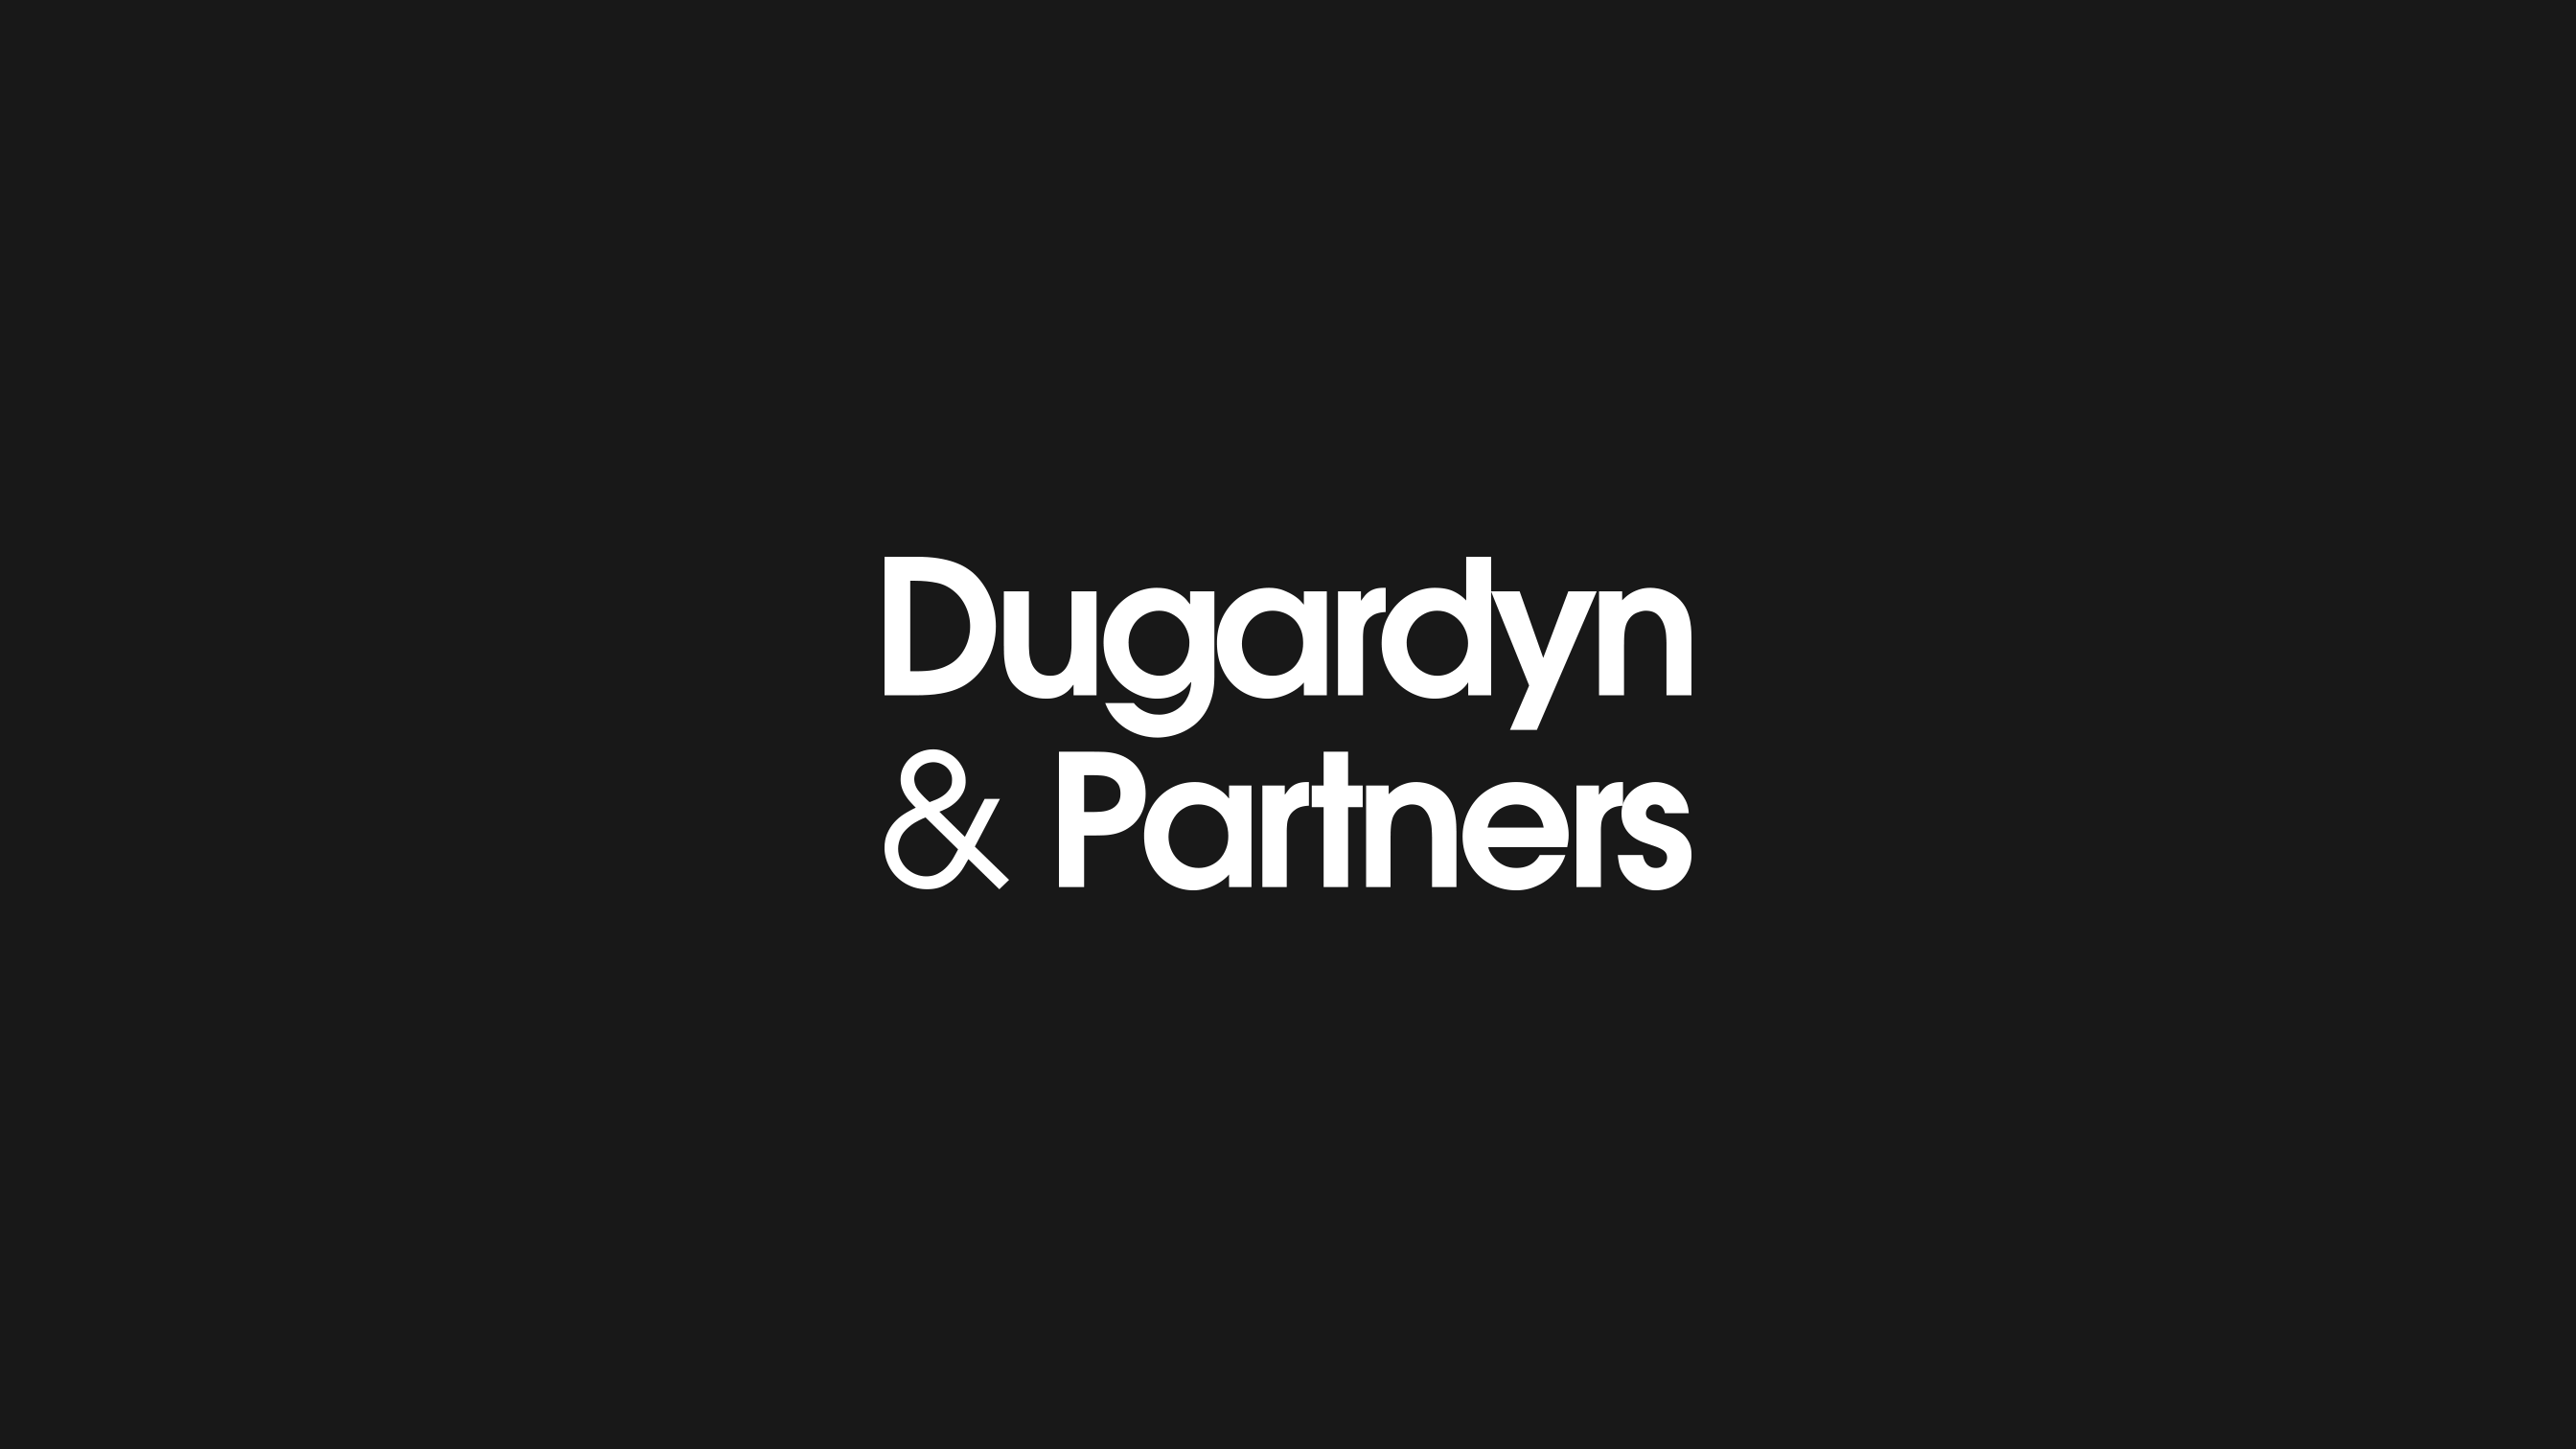 showcase-logotype-dugardyn